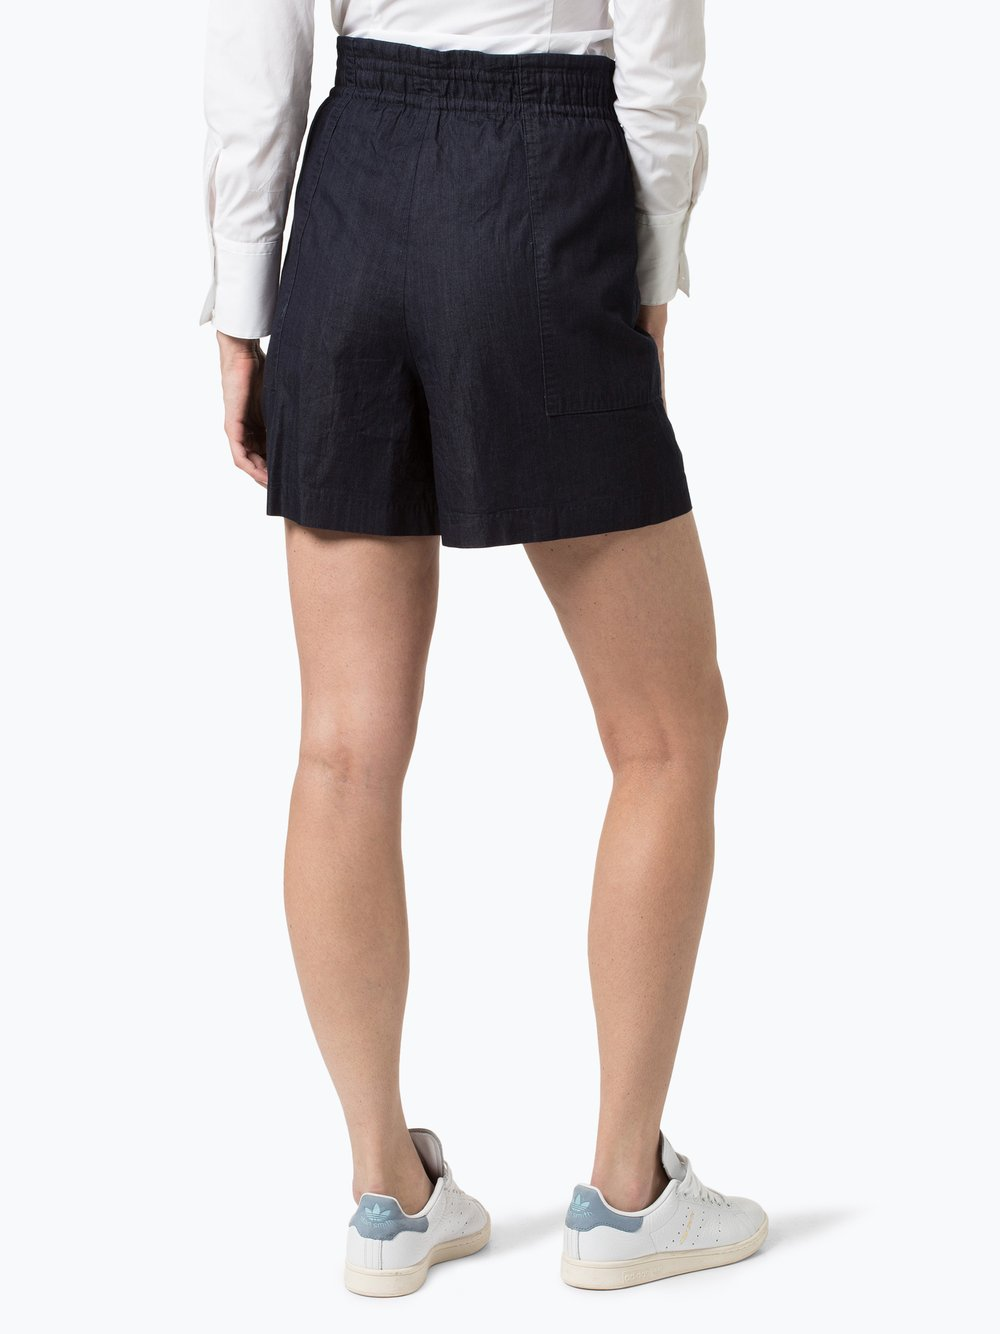 Damen Shorts - Sights blau Drykorn